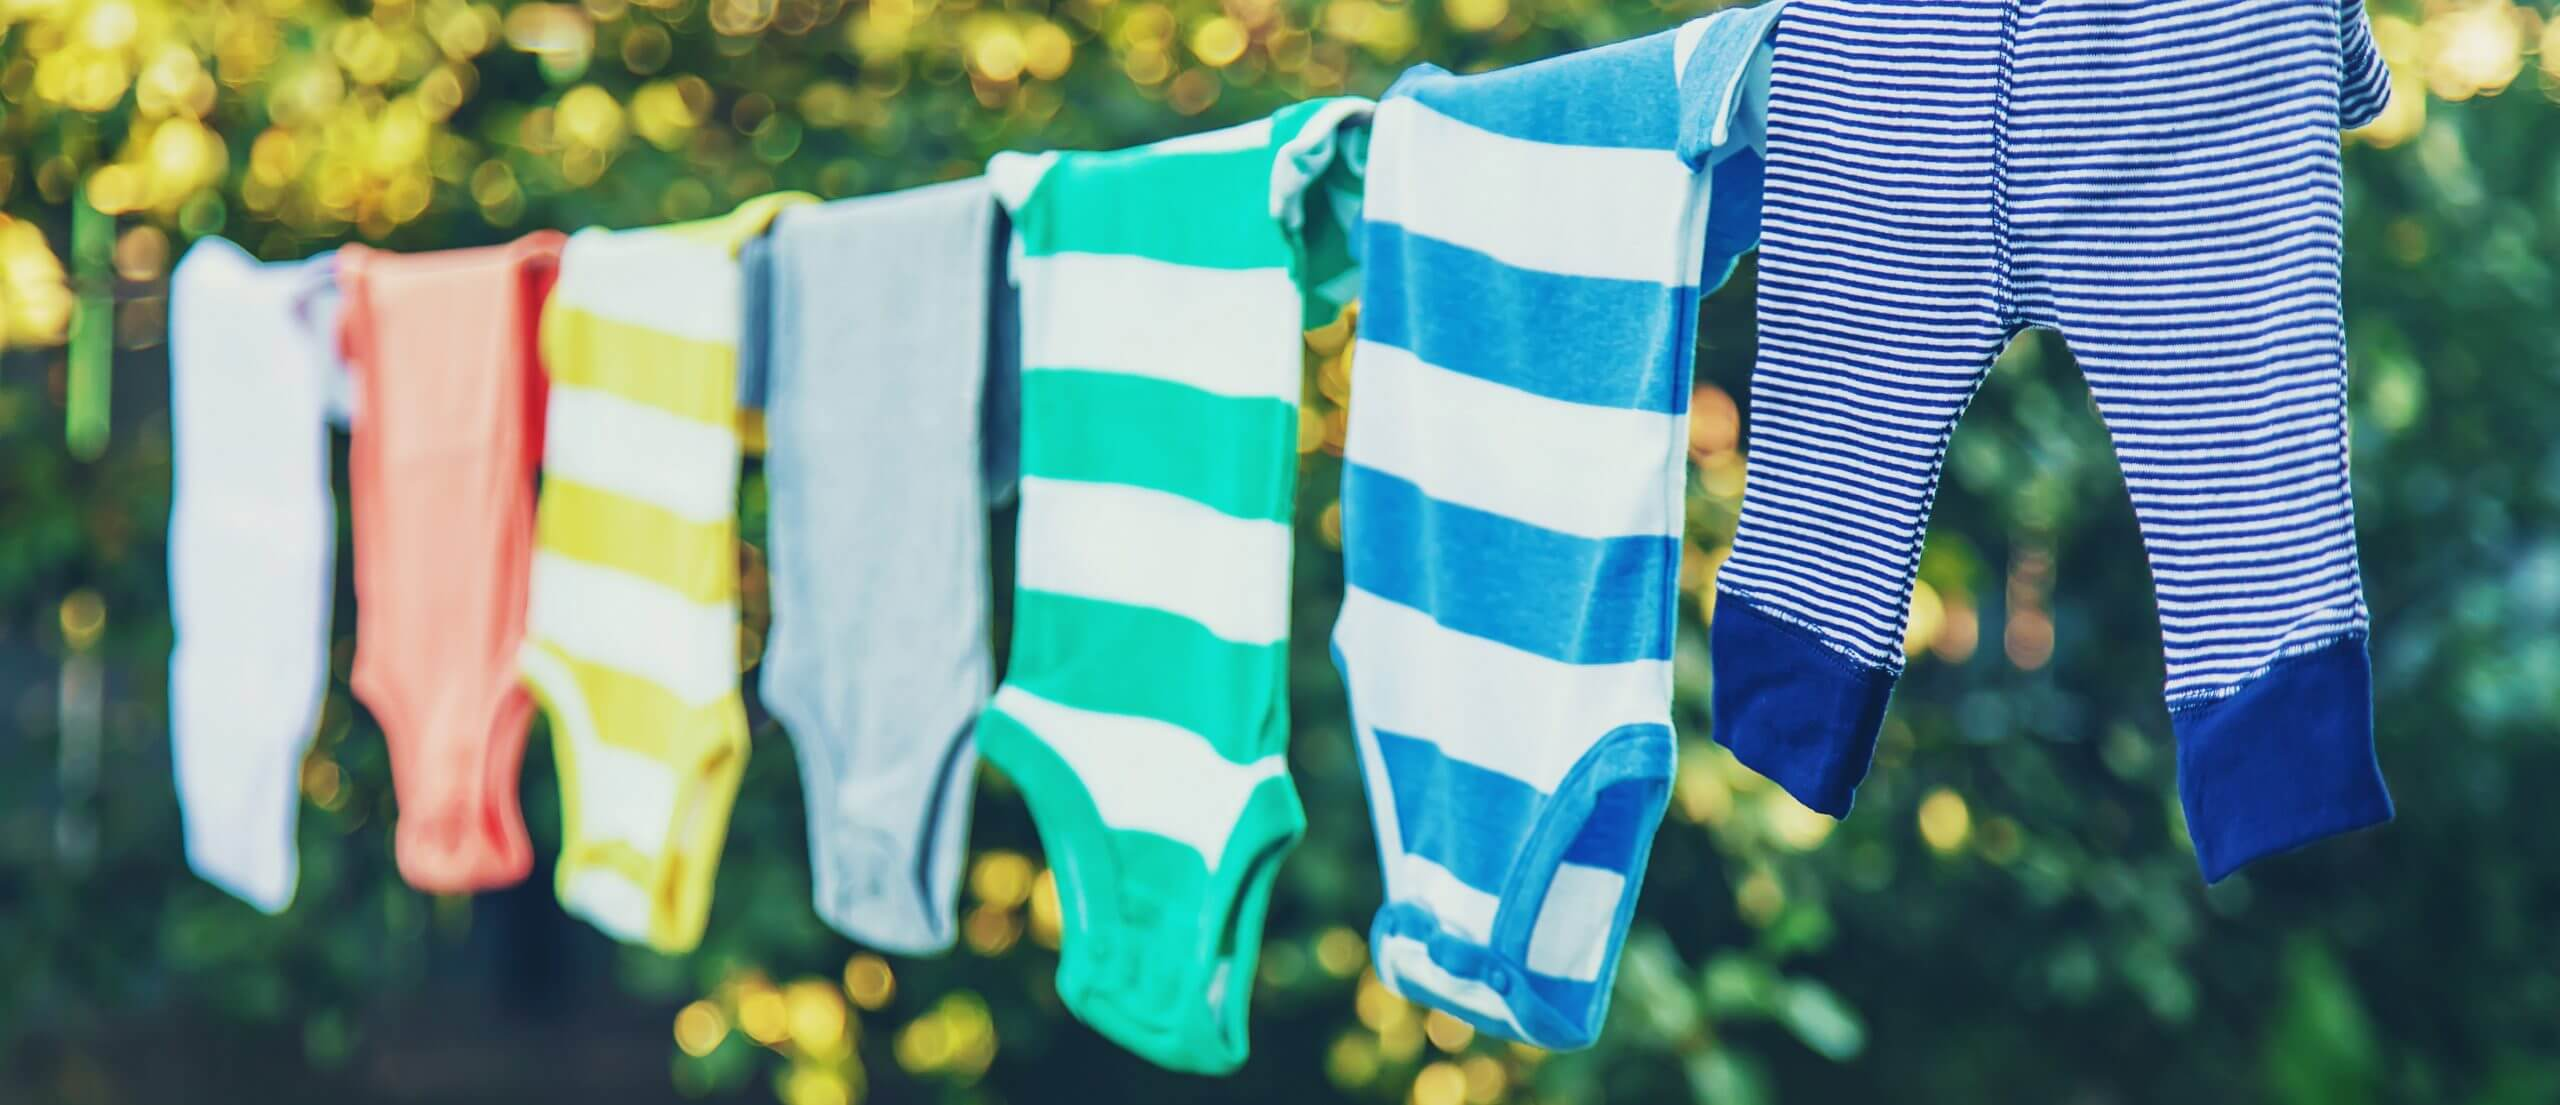 Care For Your Clothes So They Last Longer